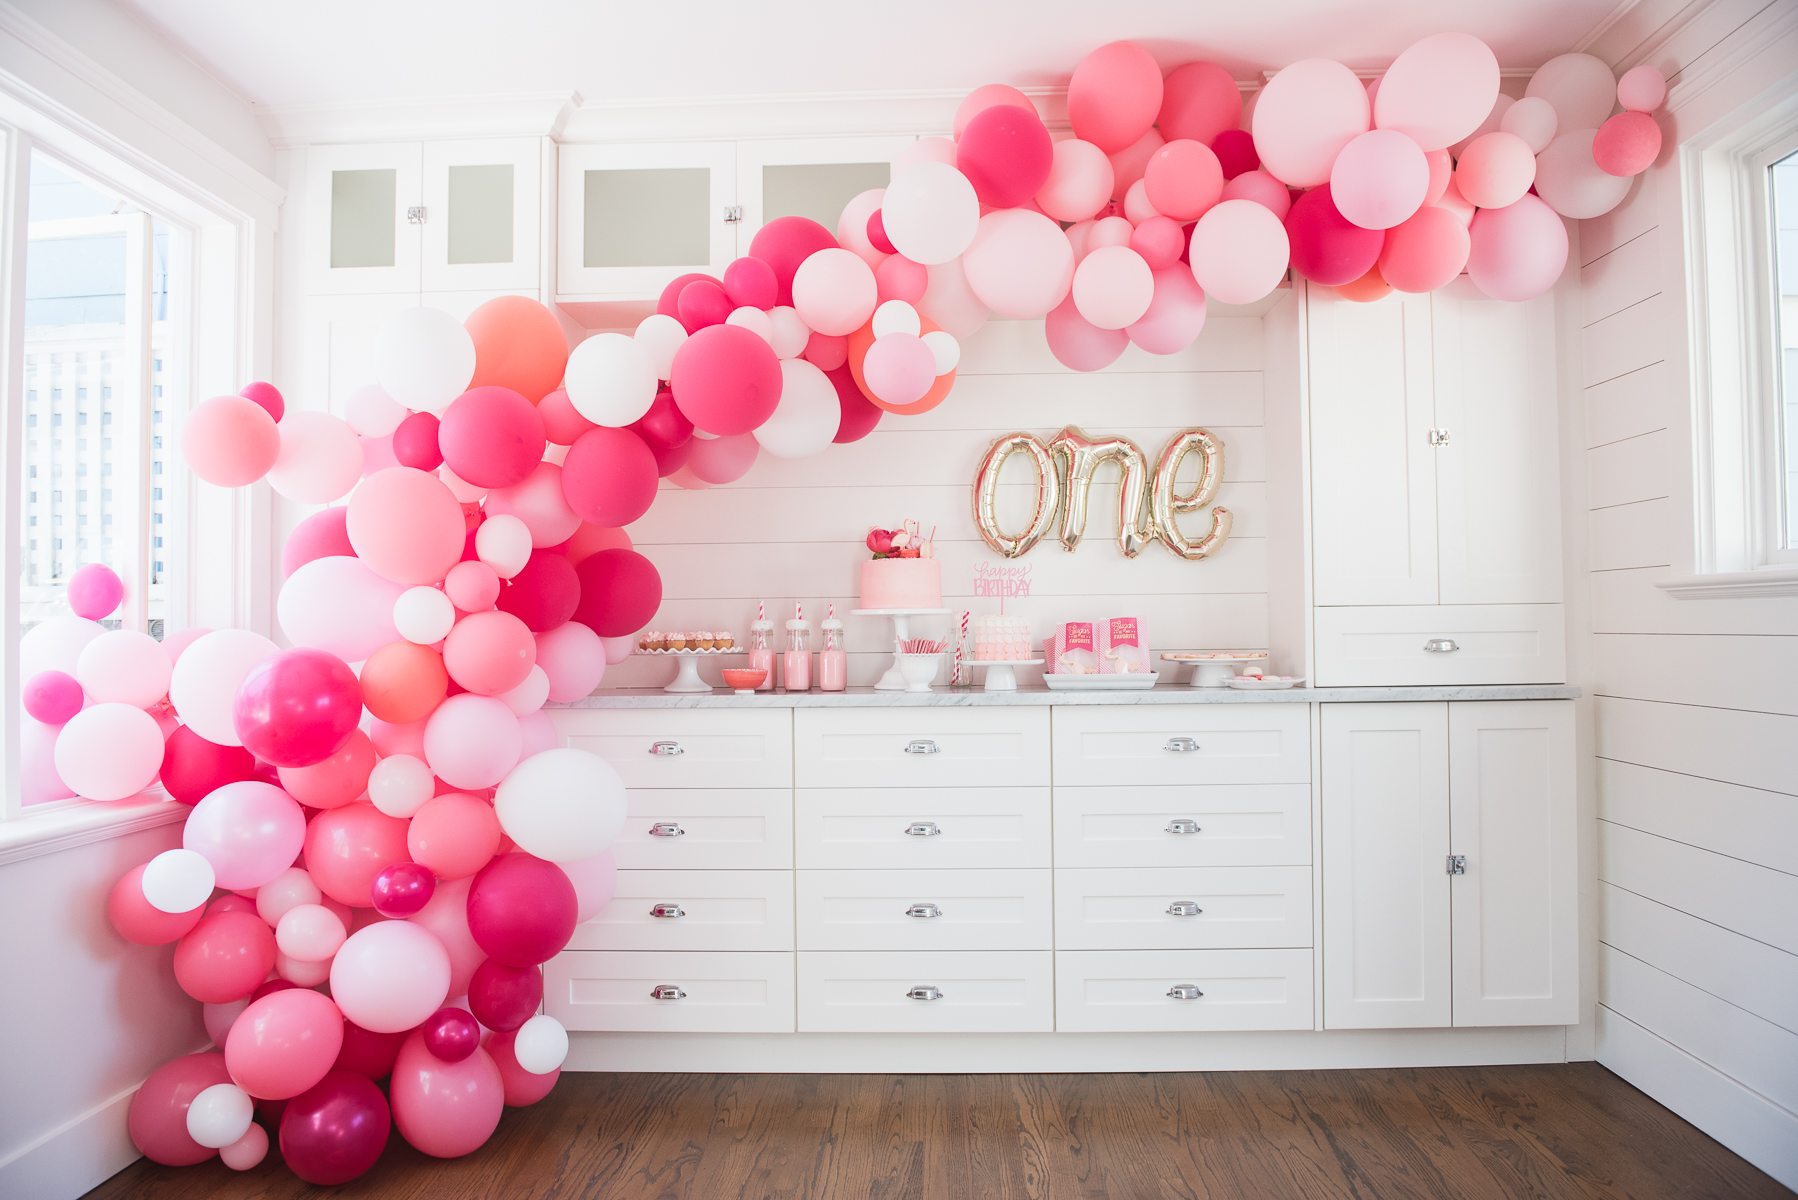 Easy Diy Balloon Arch Tutorial Without Chicken Wire Priscilla Locke